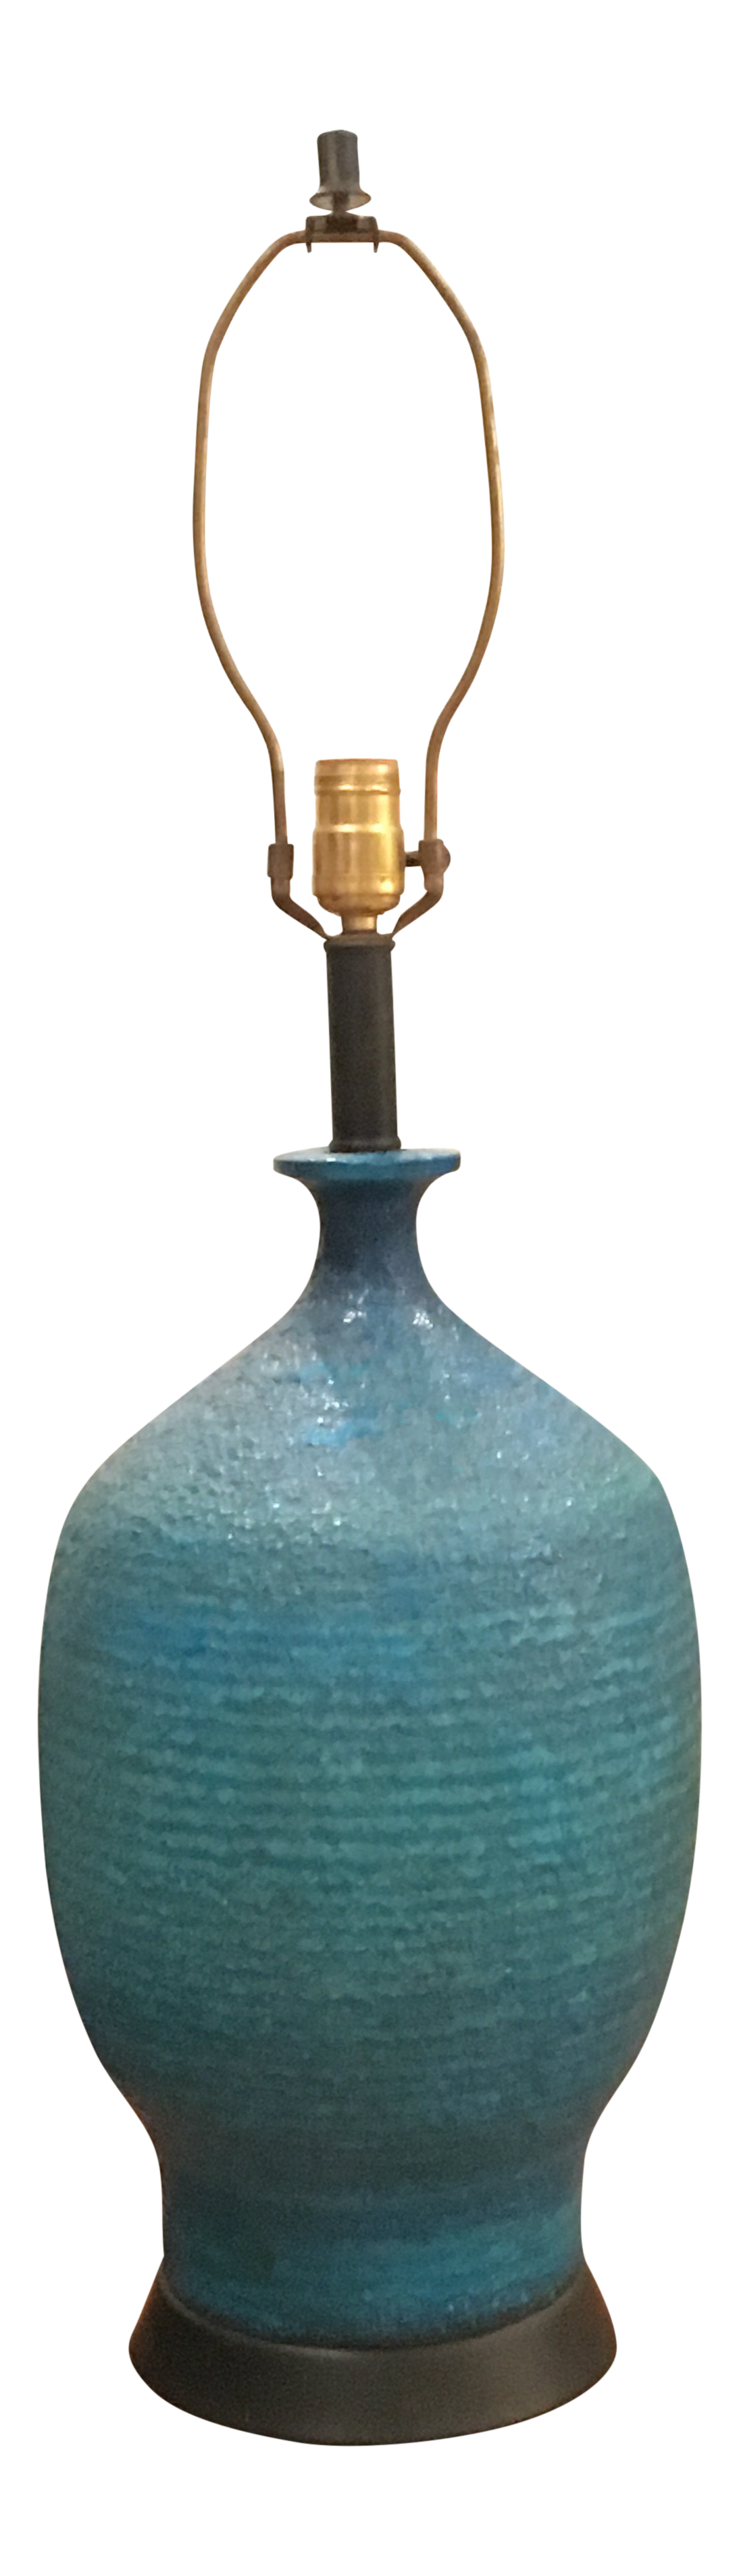 1960s Vintage Turquoise Ribbed Ceramic Table Lamp Chairish